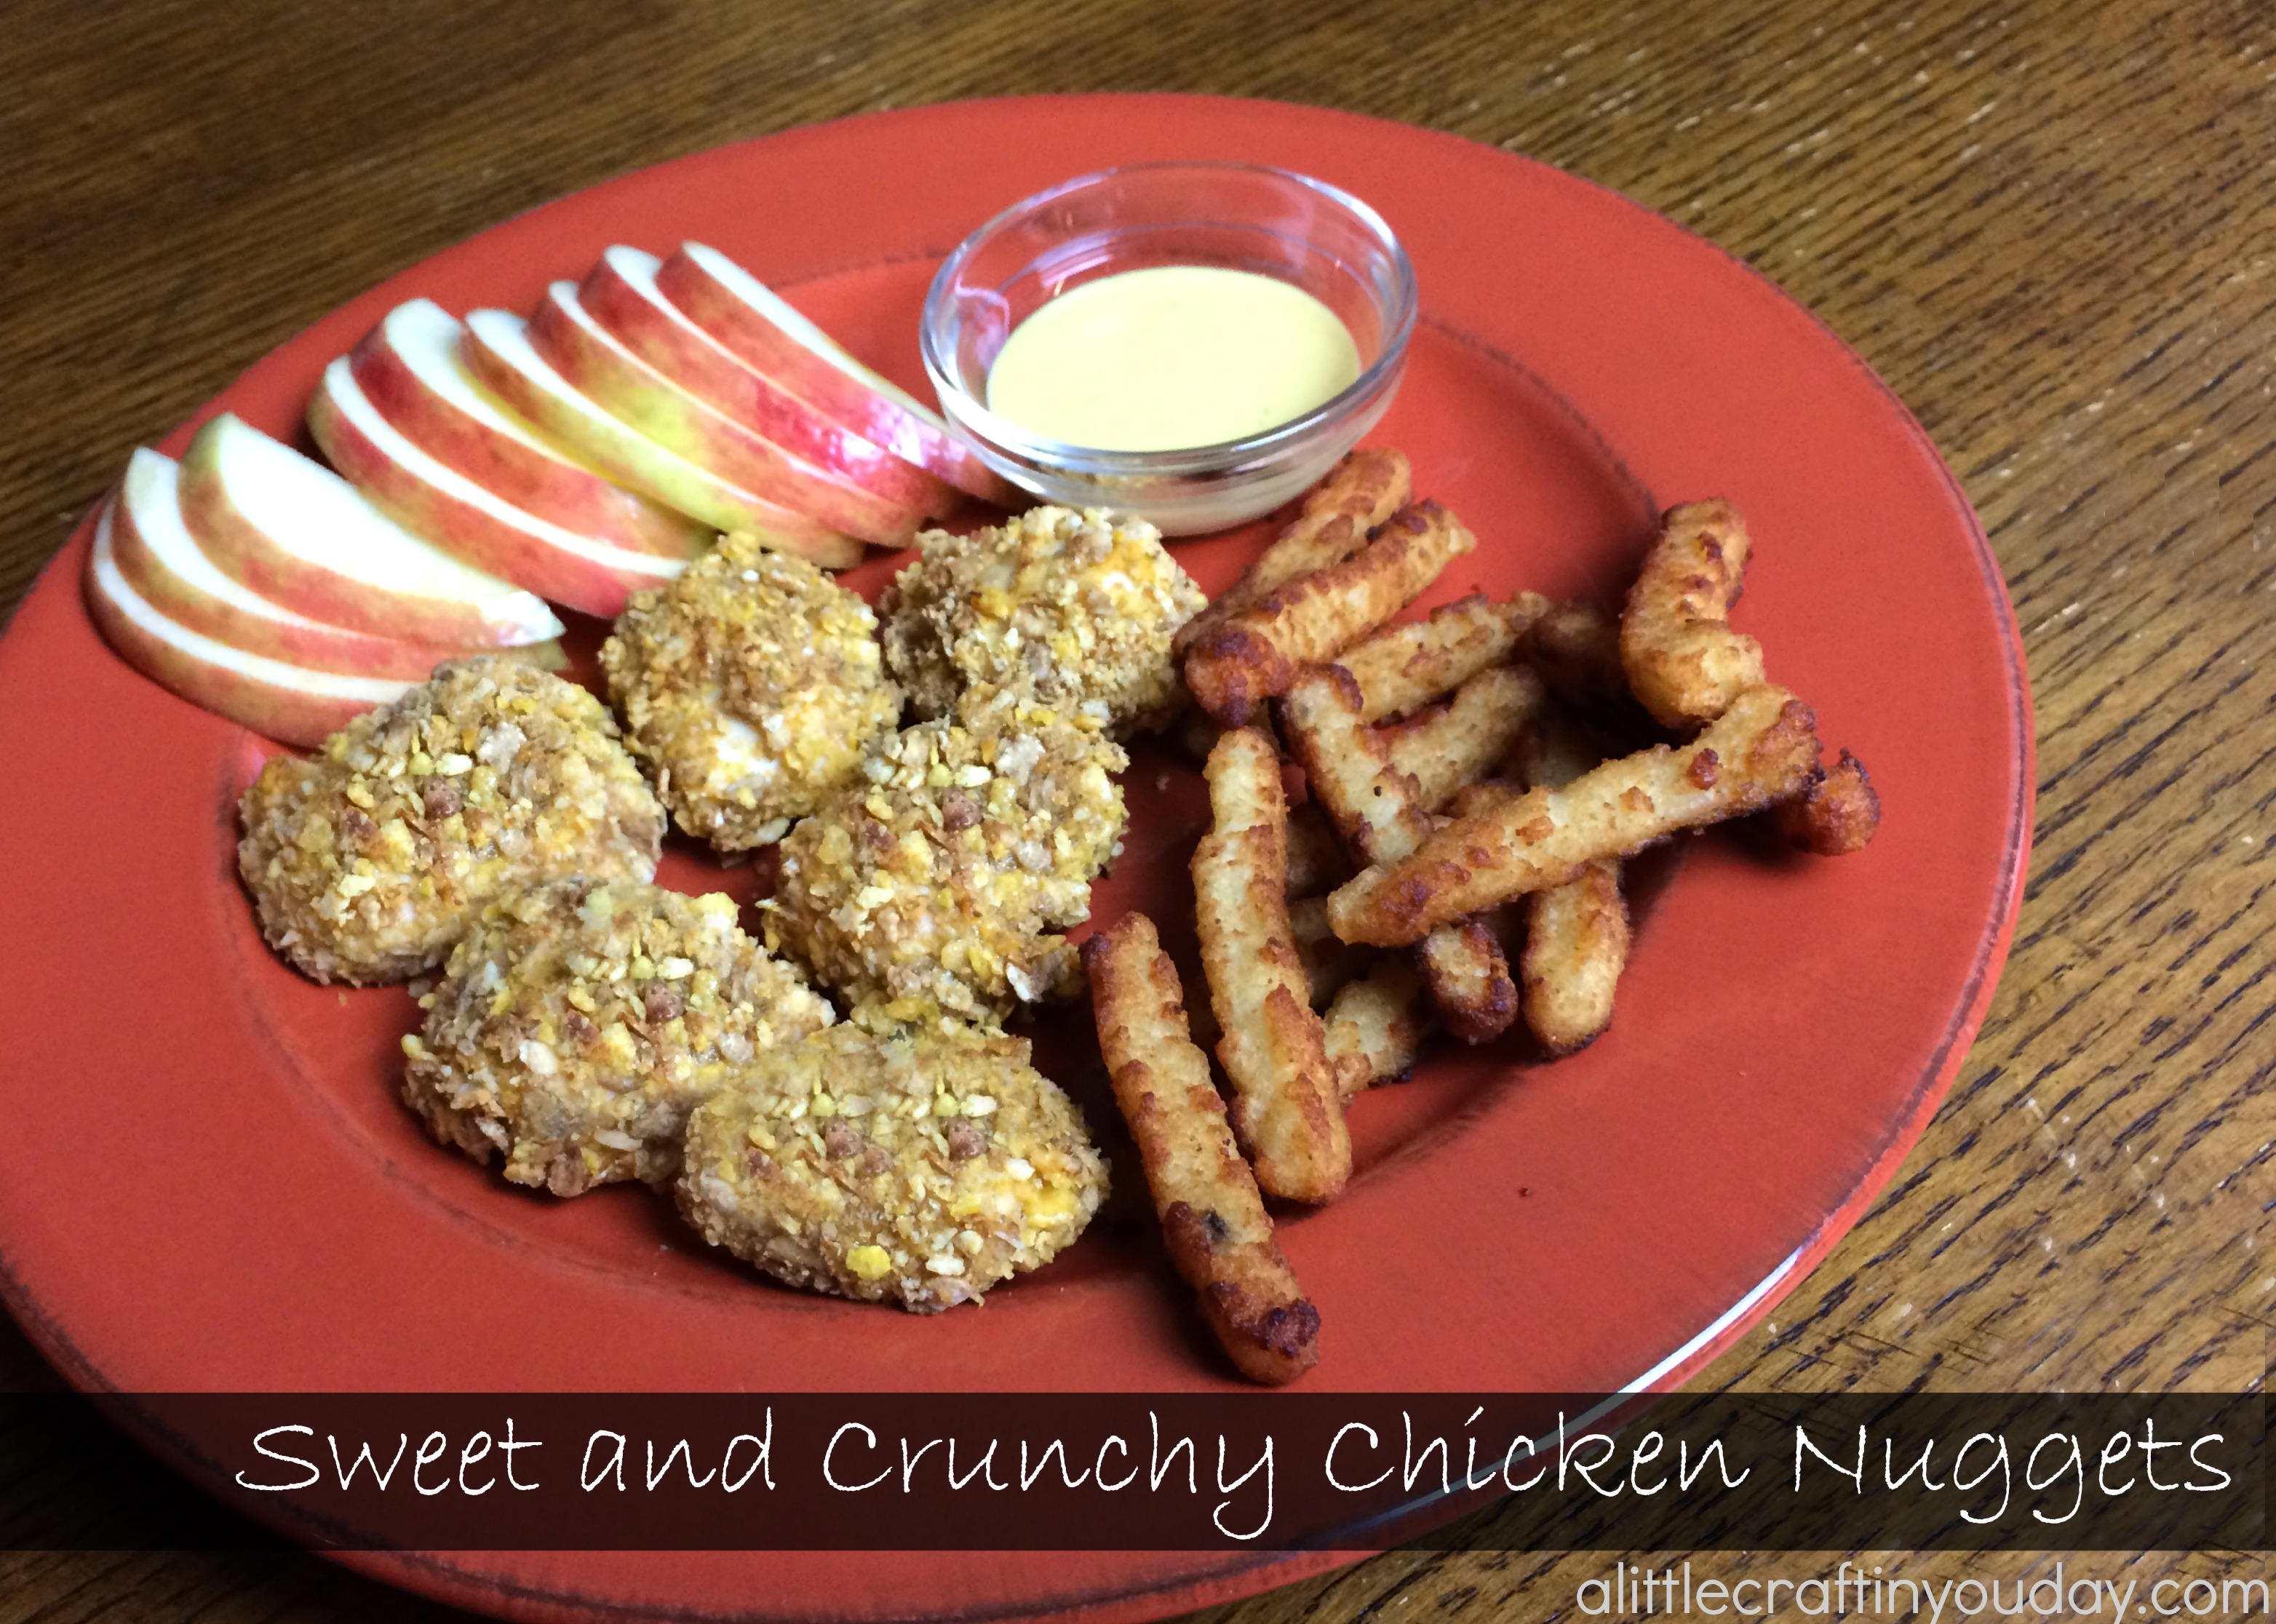 Sweet and Crunchy Chicken Nuggets